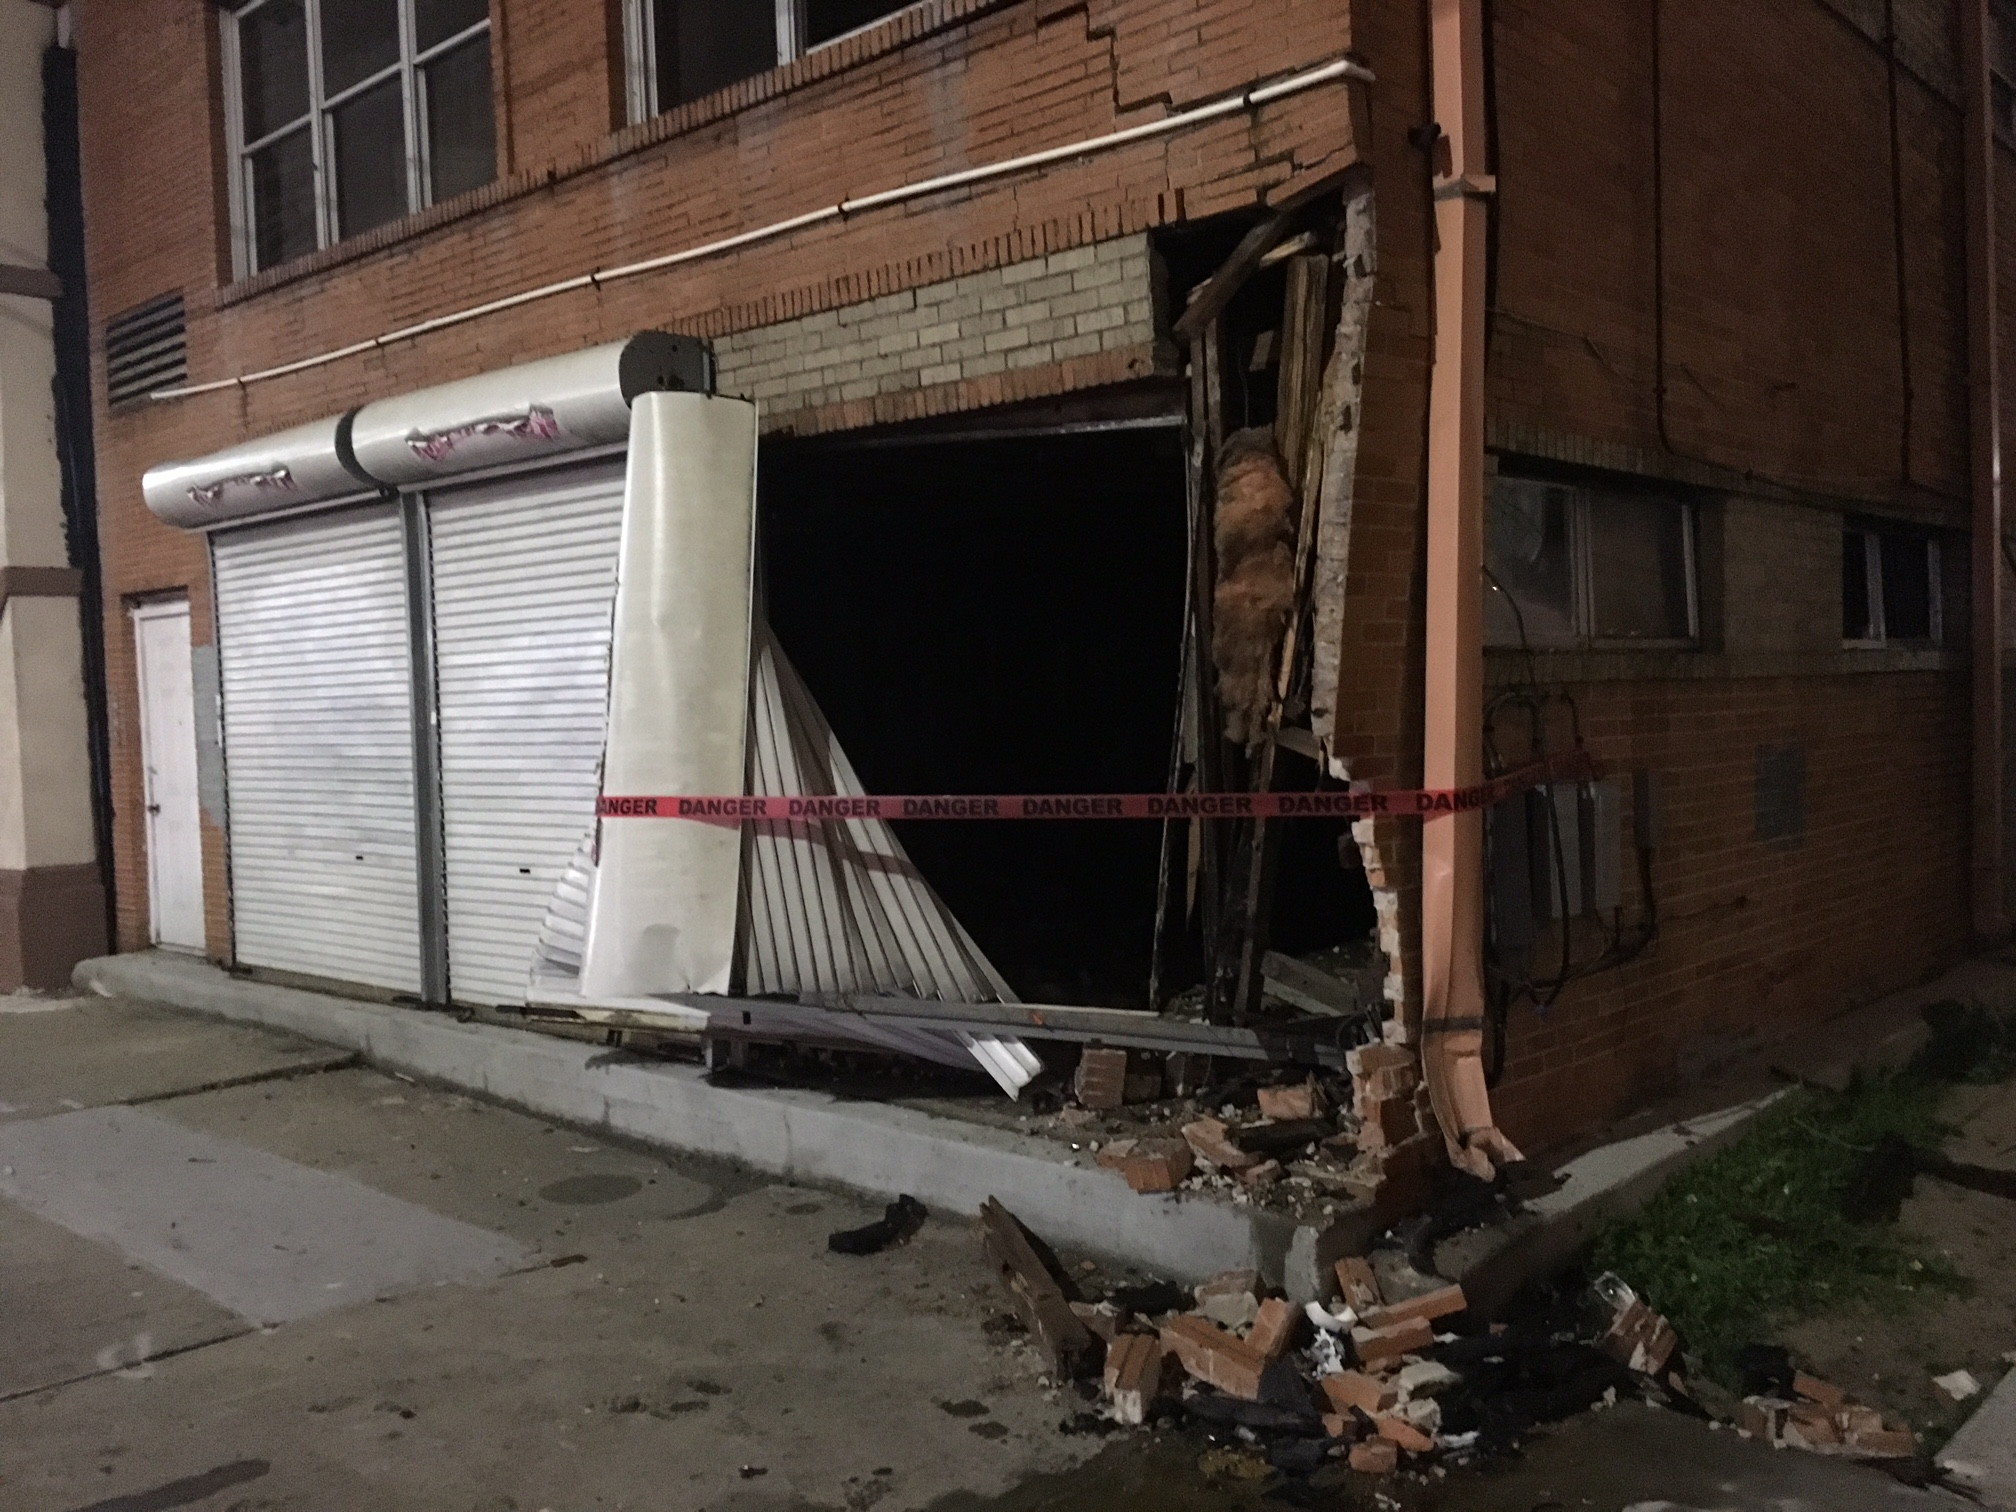 SUV Crashes into S. Broad St. Building